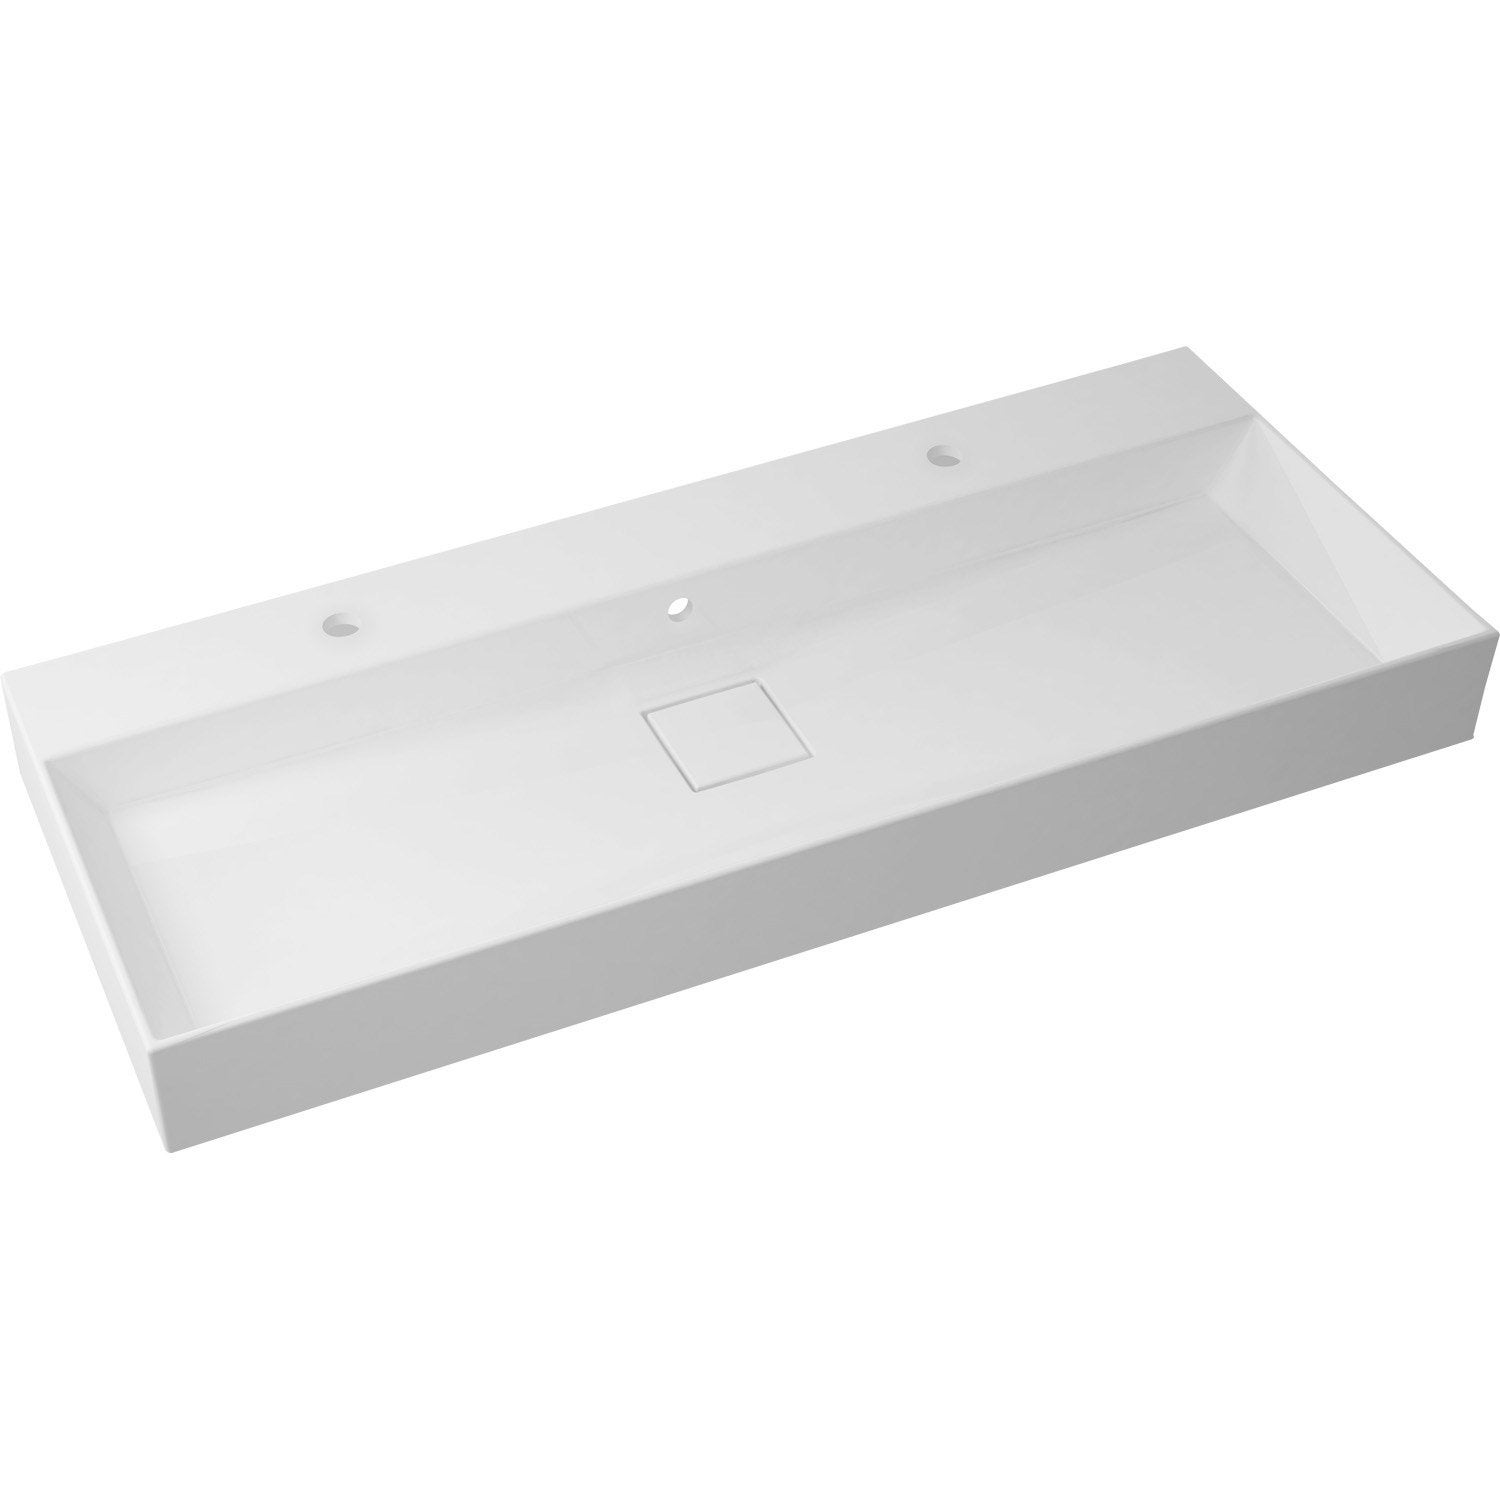 Plan vasque simple pure marbre de synth se 120 cm leroy for Meuble salle de bain simple vasque 120 cm